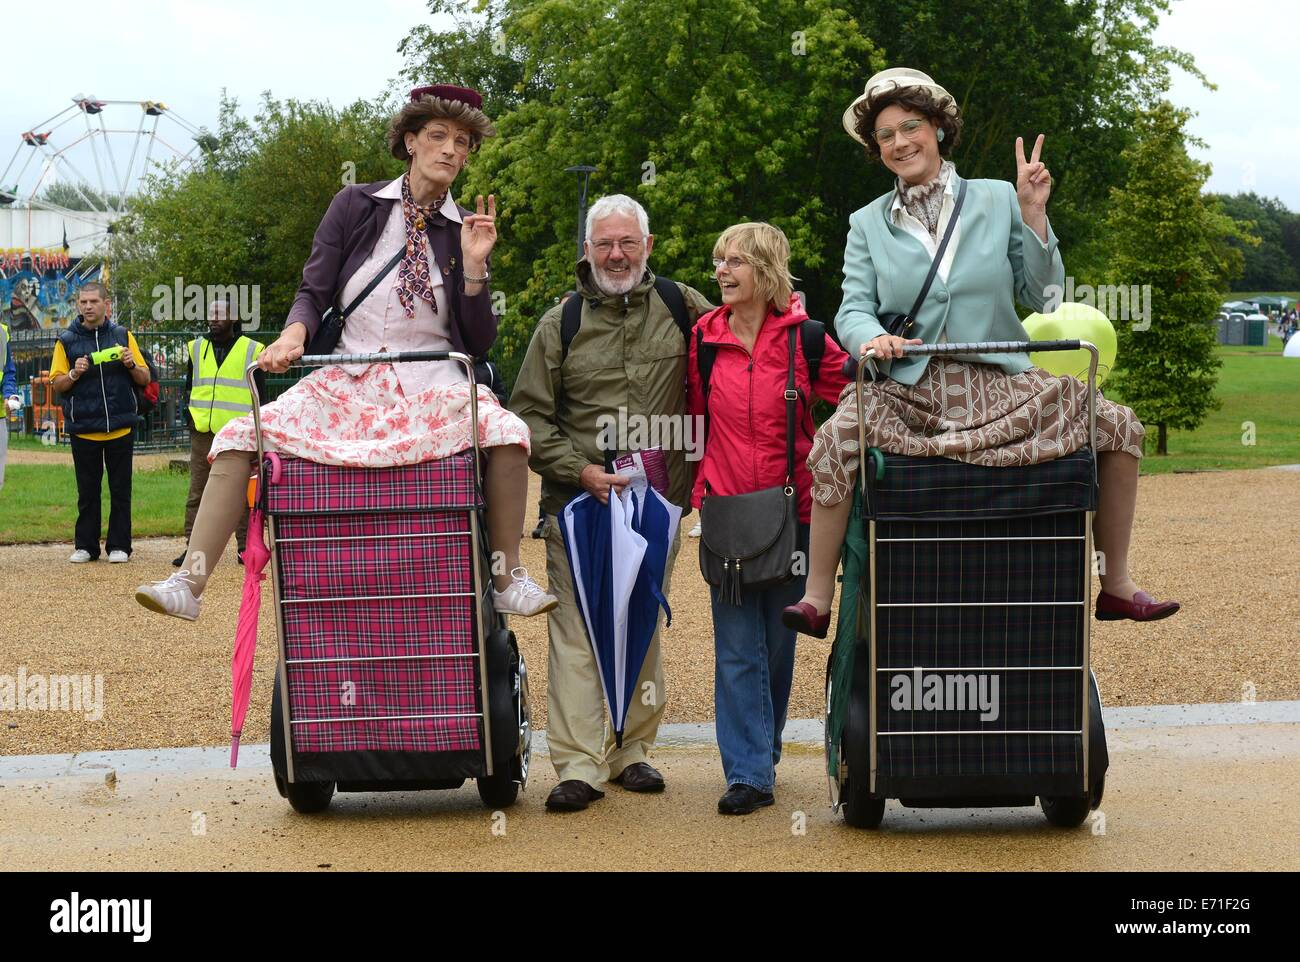 Entertainers Granny Turismo having fun with Richard and Sue Pearson at Telford Town Park. - Stock Image